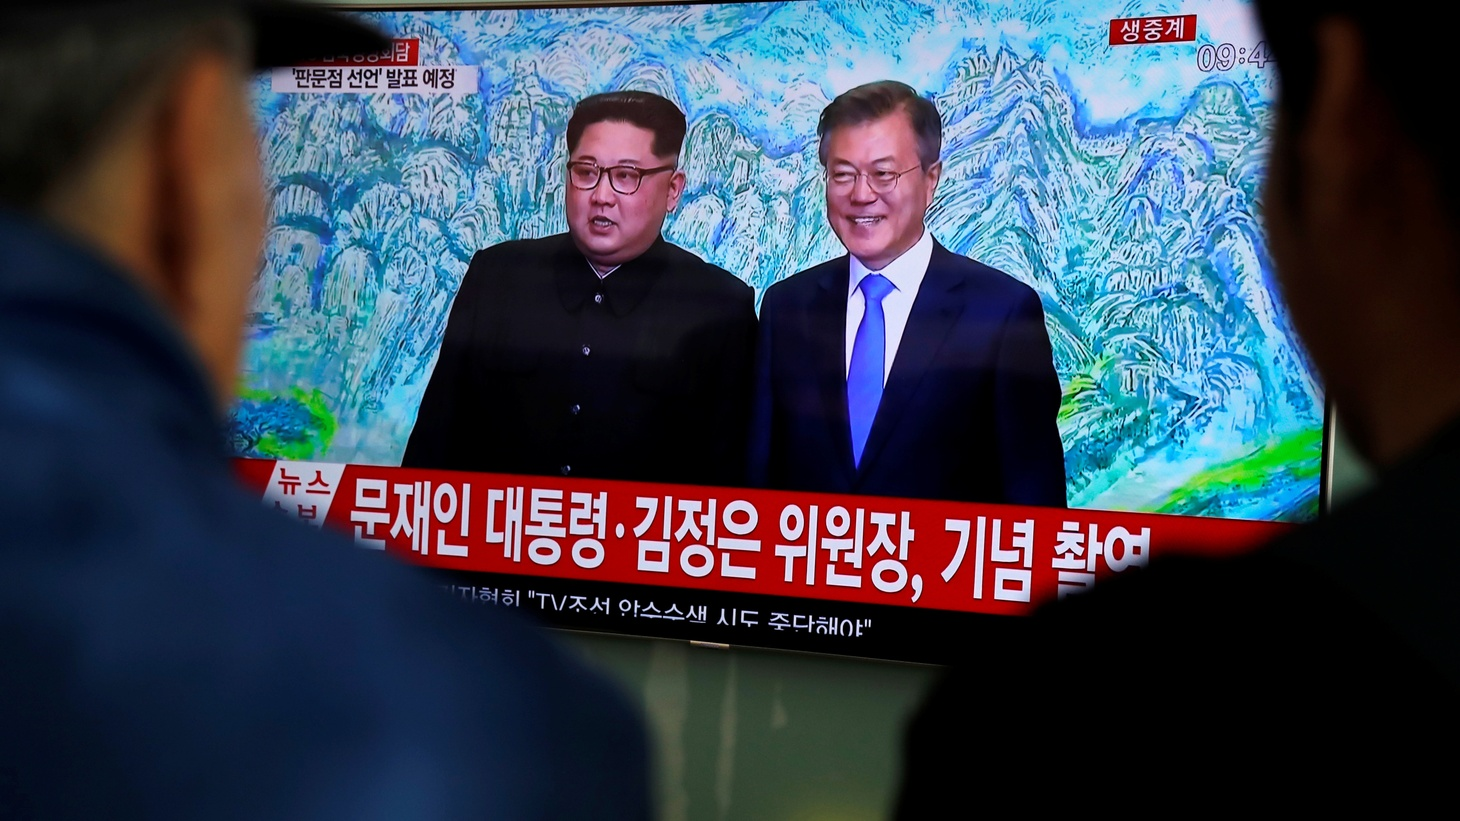 Kim Jong-Un of North Korea and Moon Jae-In of South Korean had a historic meeting where they set big goals for peace and denuclearization. The meeting was big on drama and scant on details.